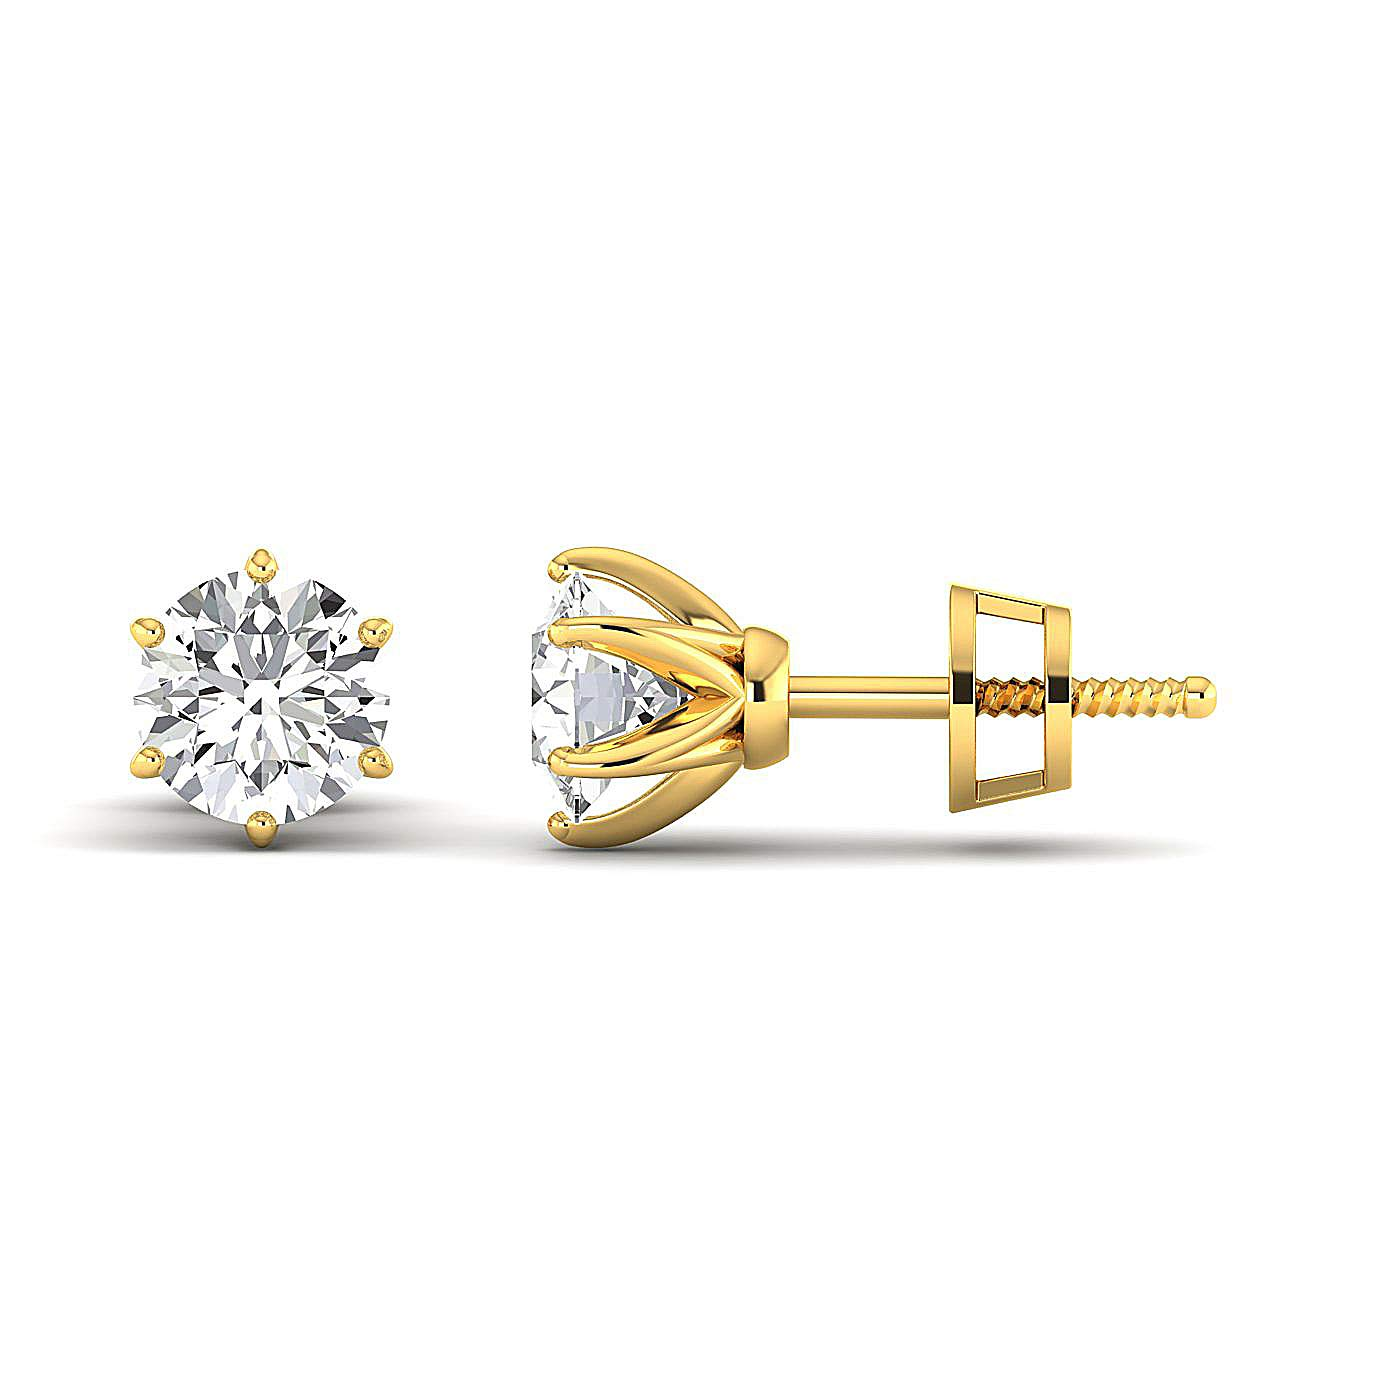 GH//VVS Round Brilliant Earring Studs 0.3 to 4 Carat Moissanite Stud Earrings Stud Earrings for Women perfect Jewelry Gifts for Women Teen Girls 14K yellow-gold